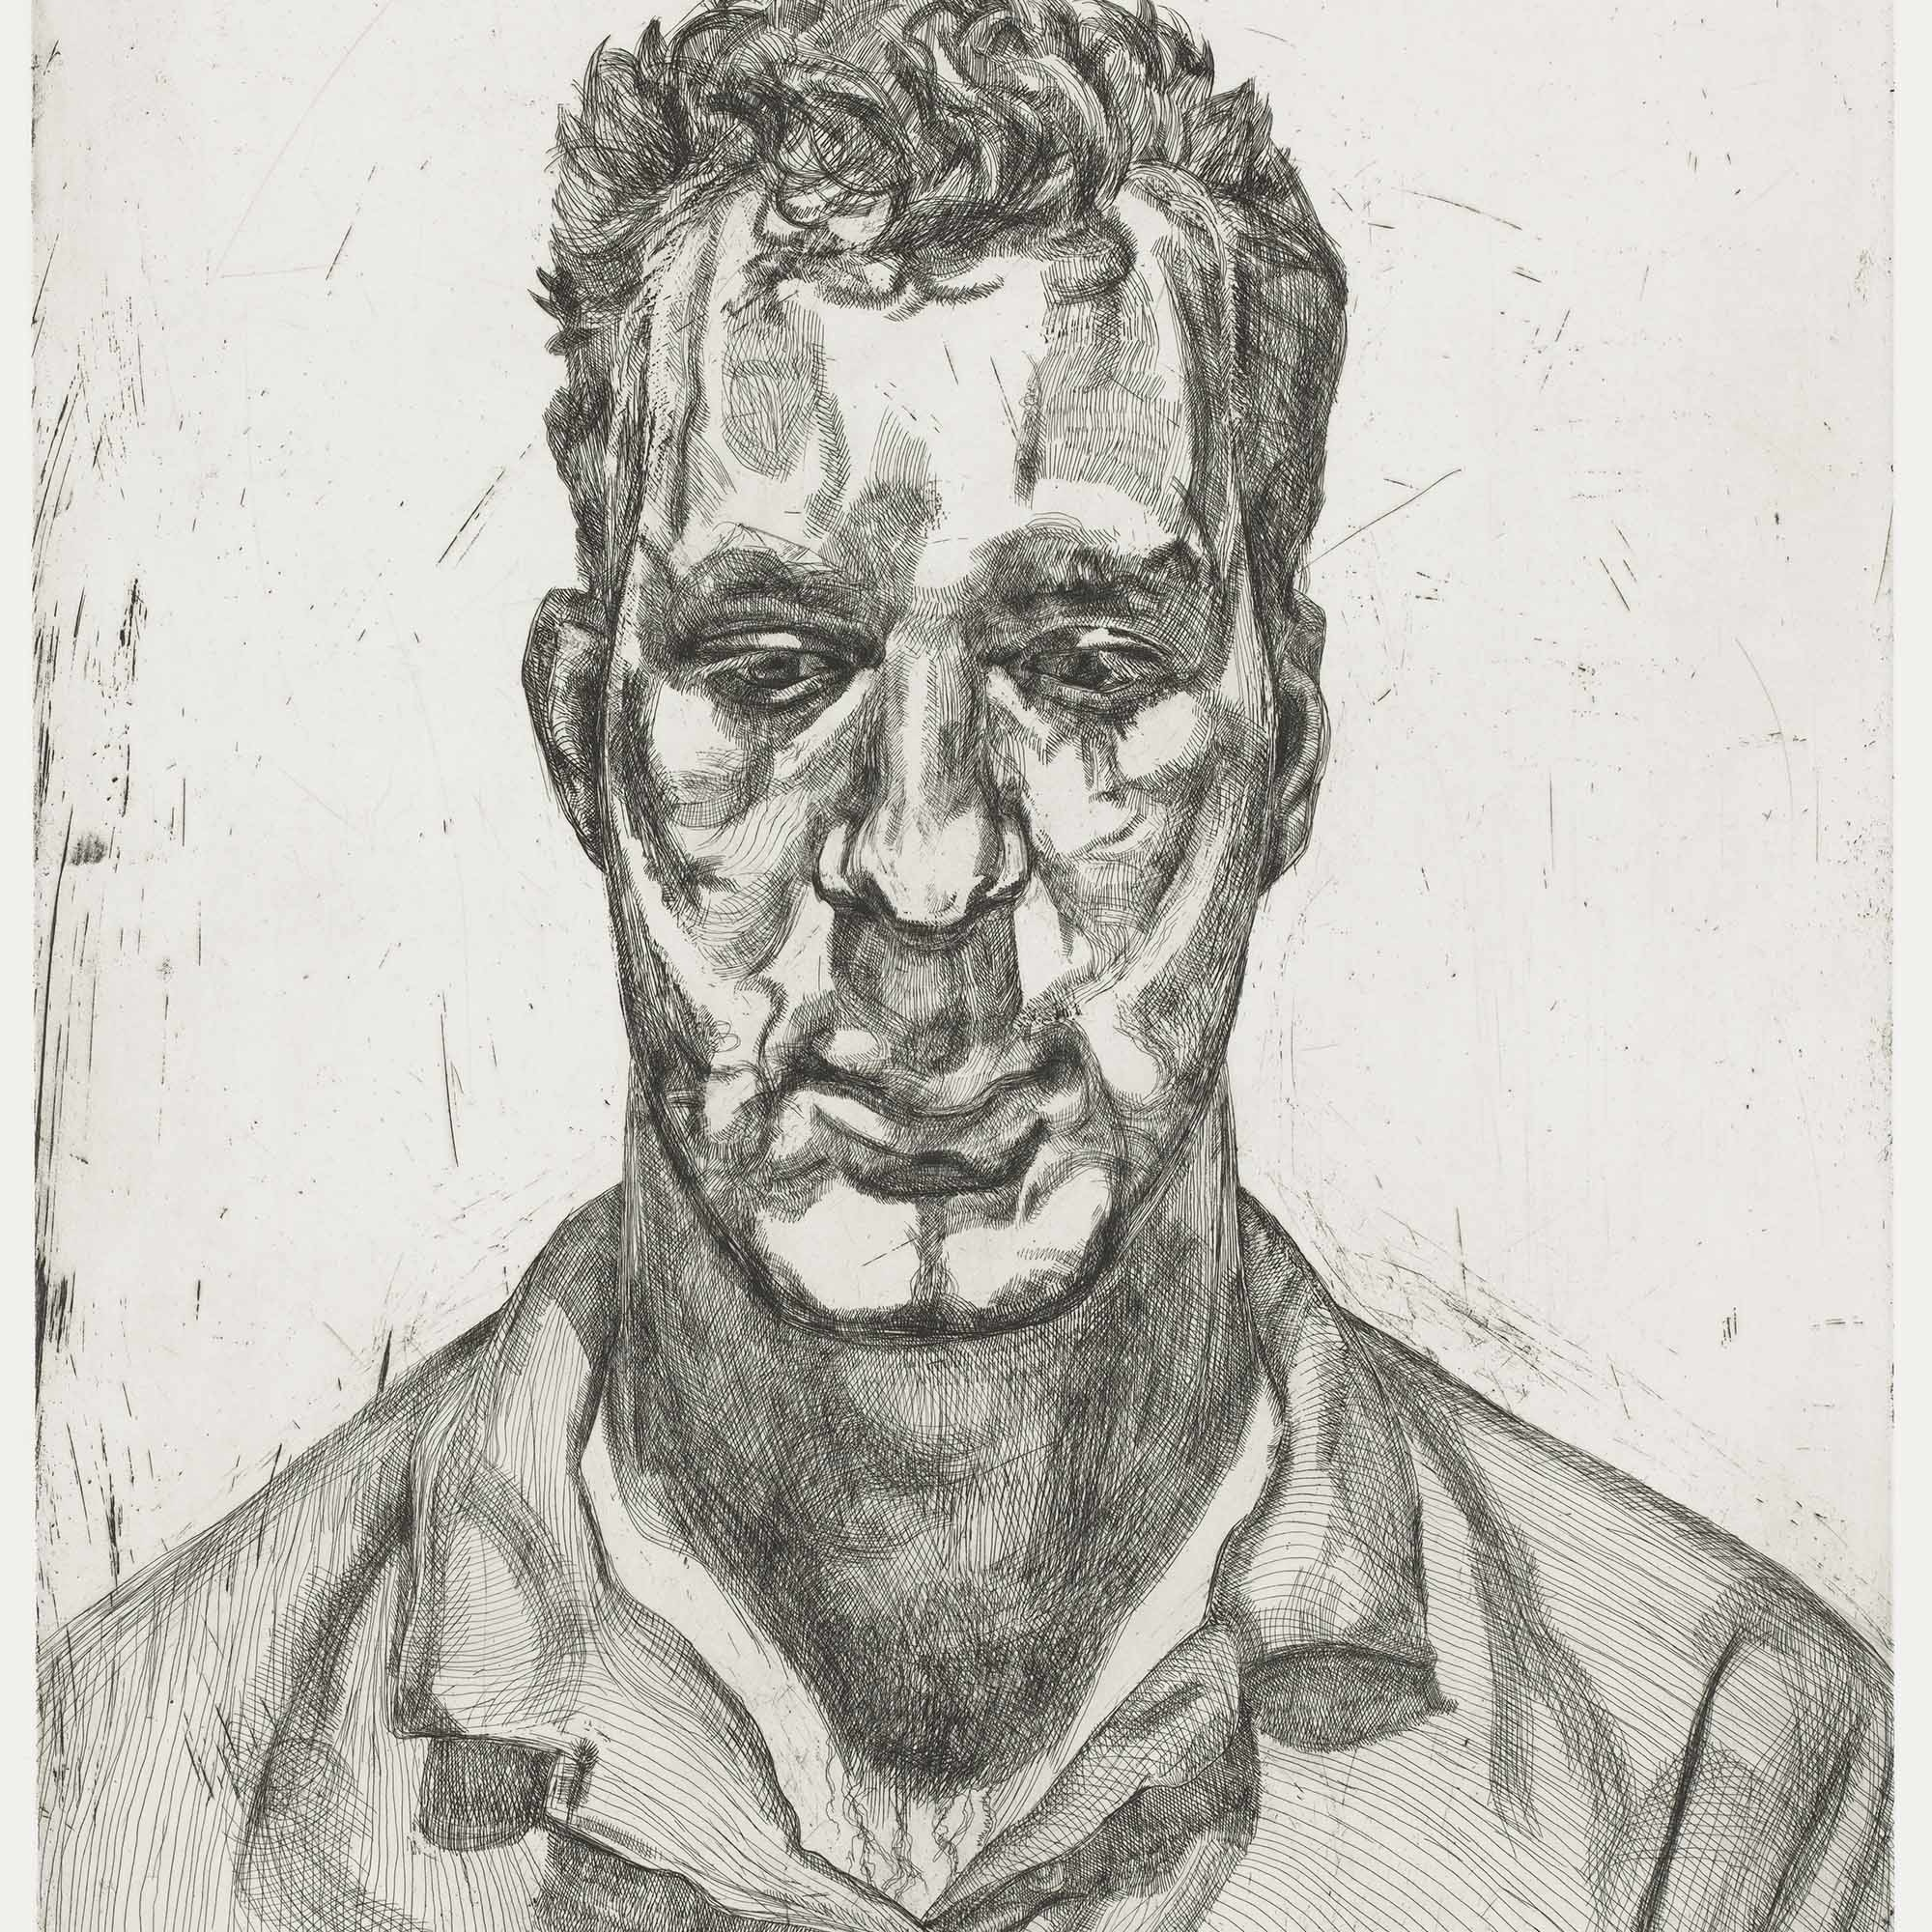 Lucian%20freud %20the%20painter%27s%20etchings